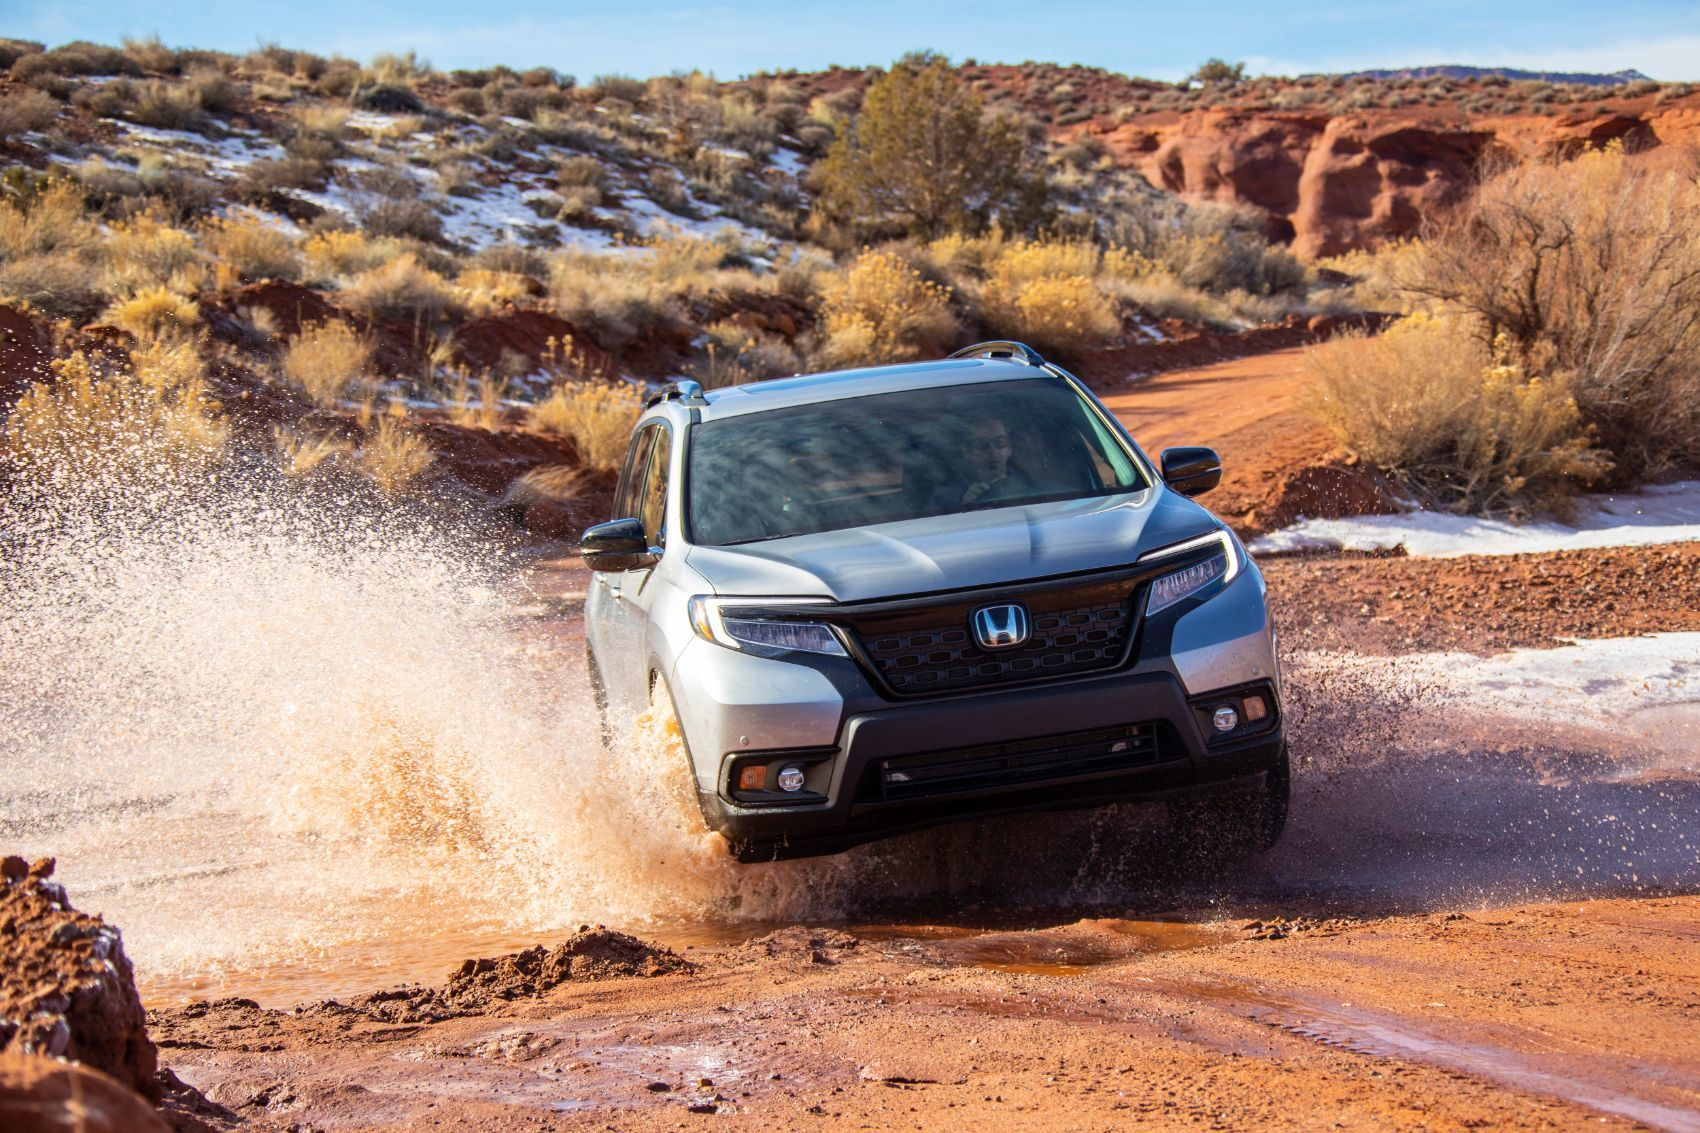 2019 Honda Passport Review: Calling All Weekend Warriors! 16